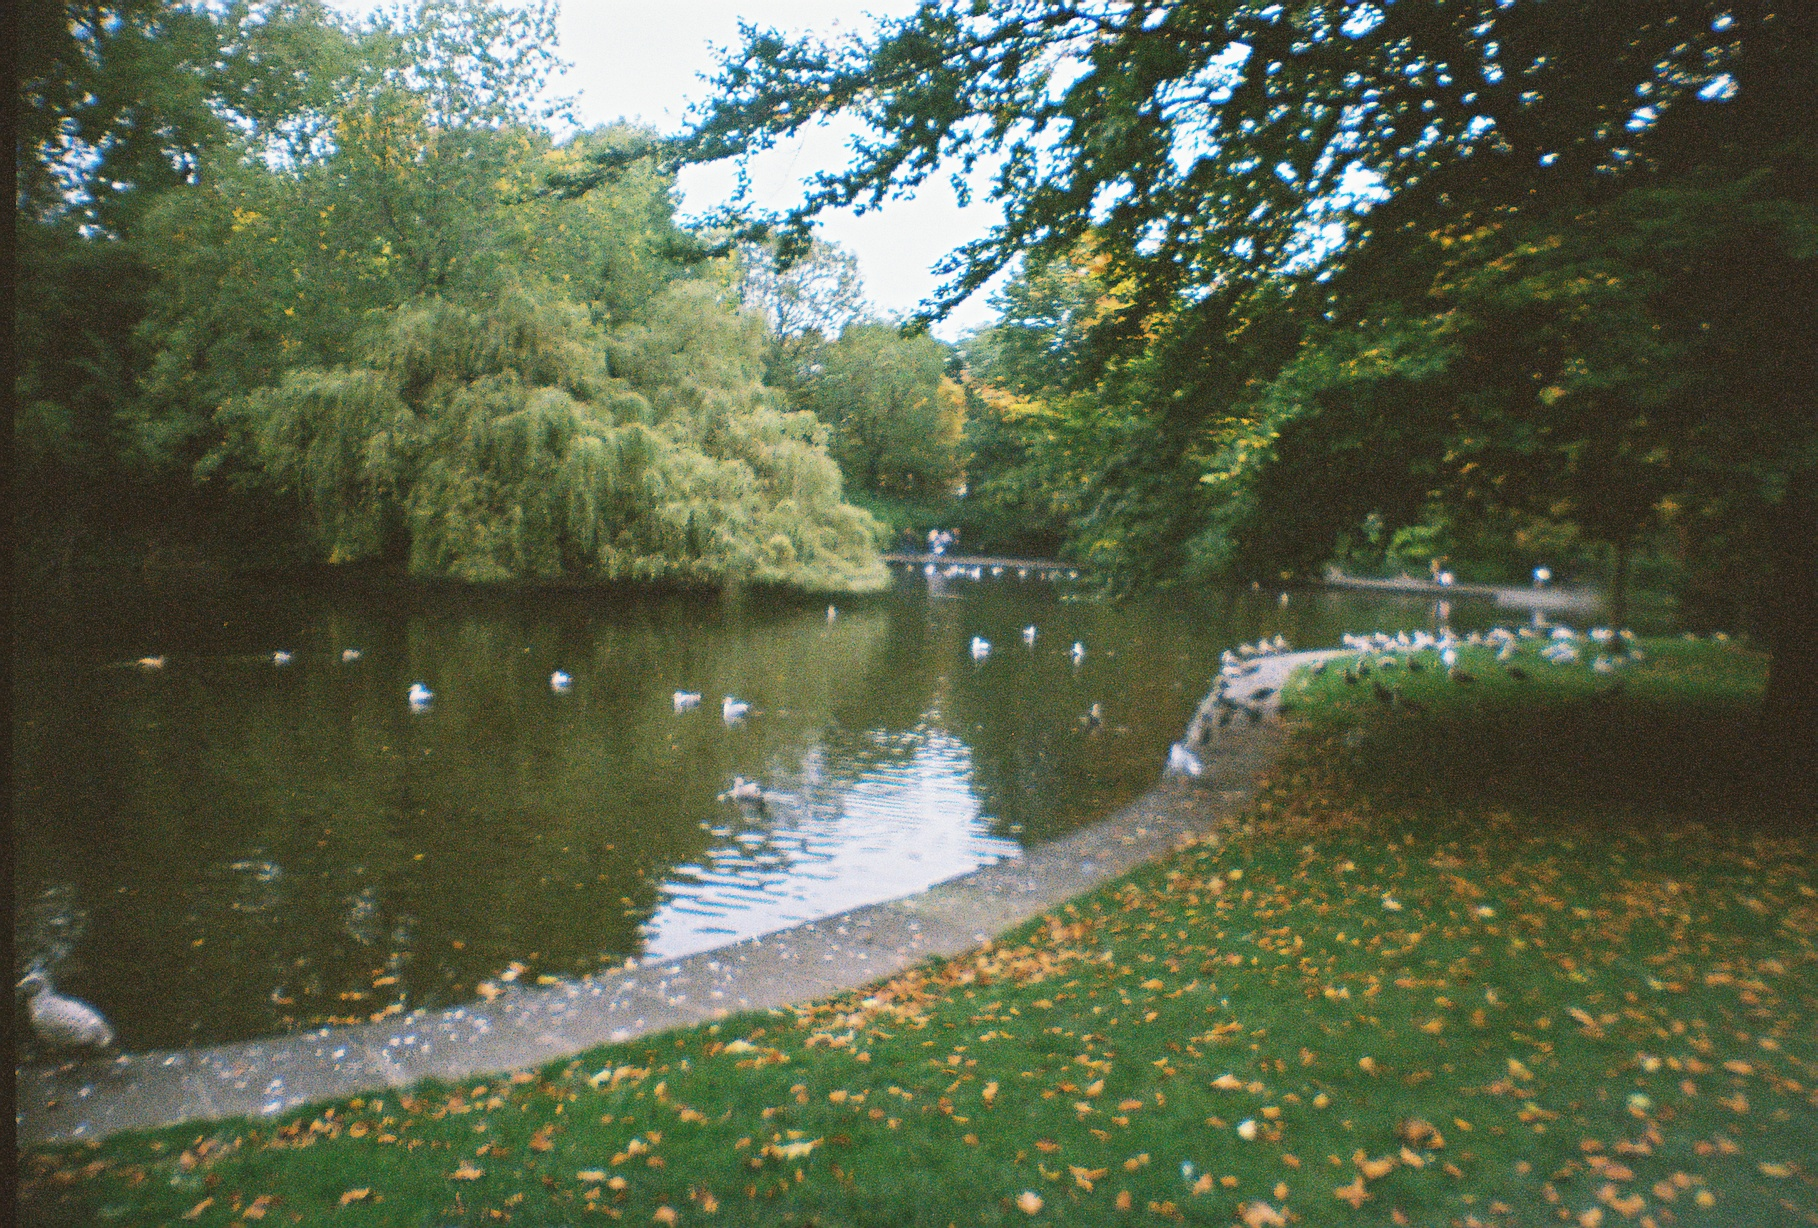 Saint Stephen's Green